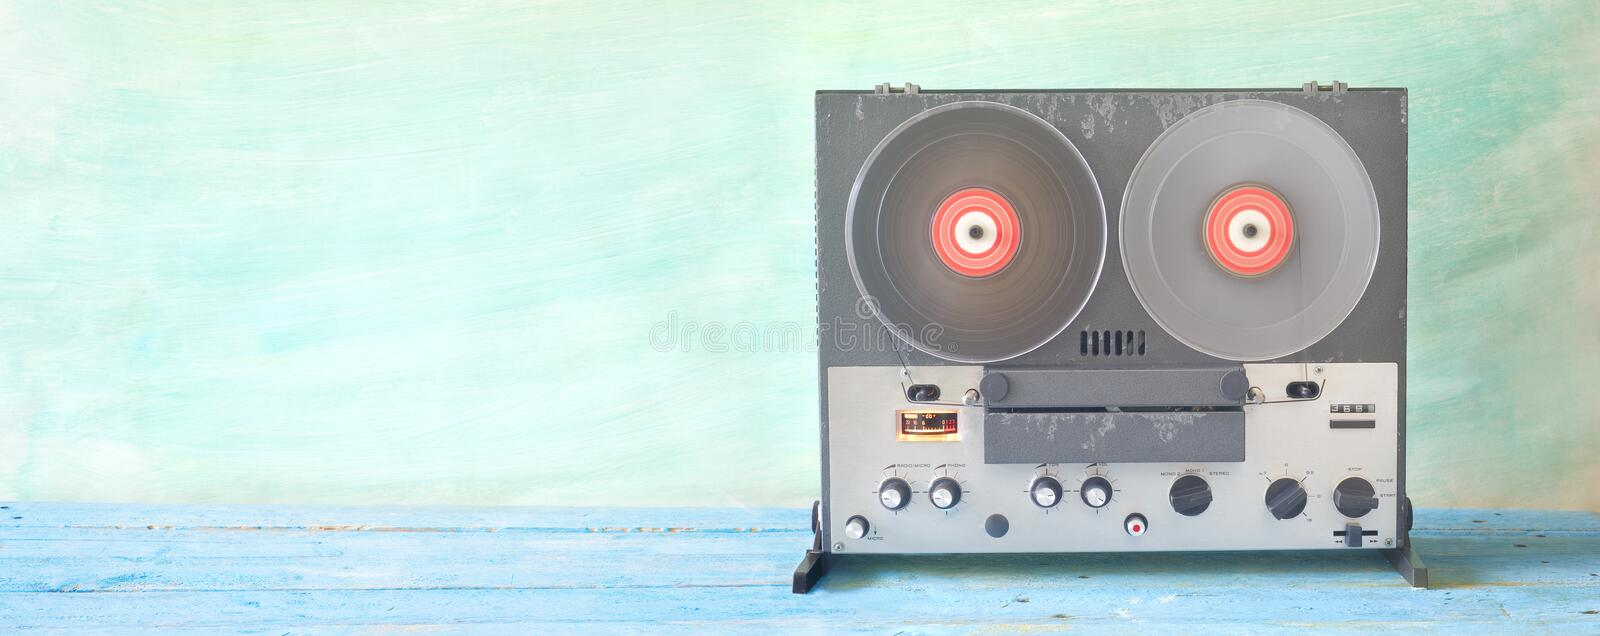 Old reel to reel tape recorder stock image